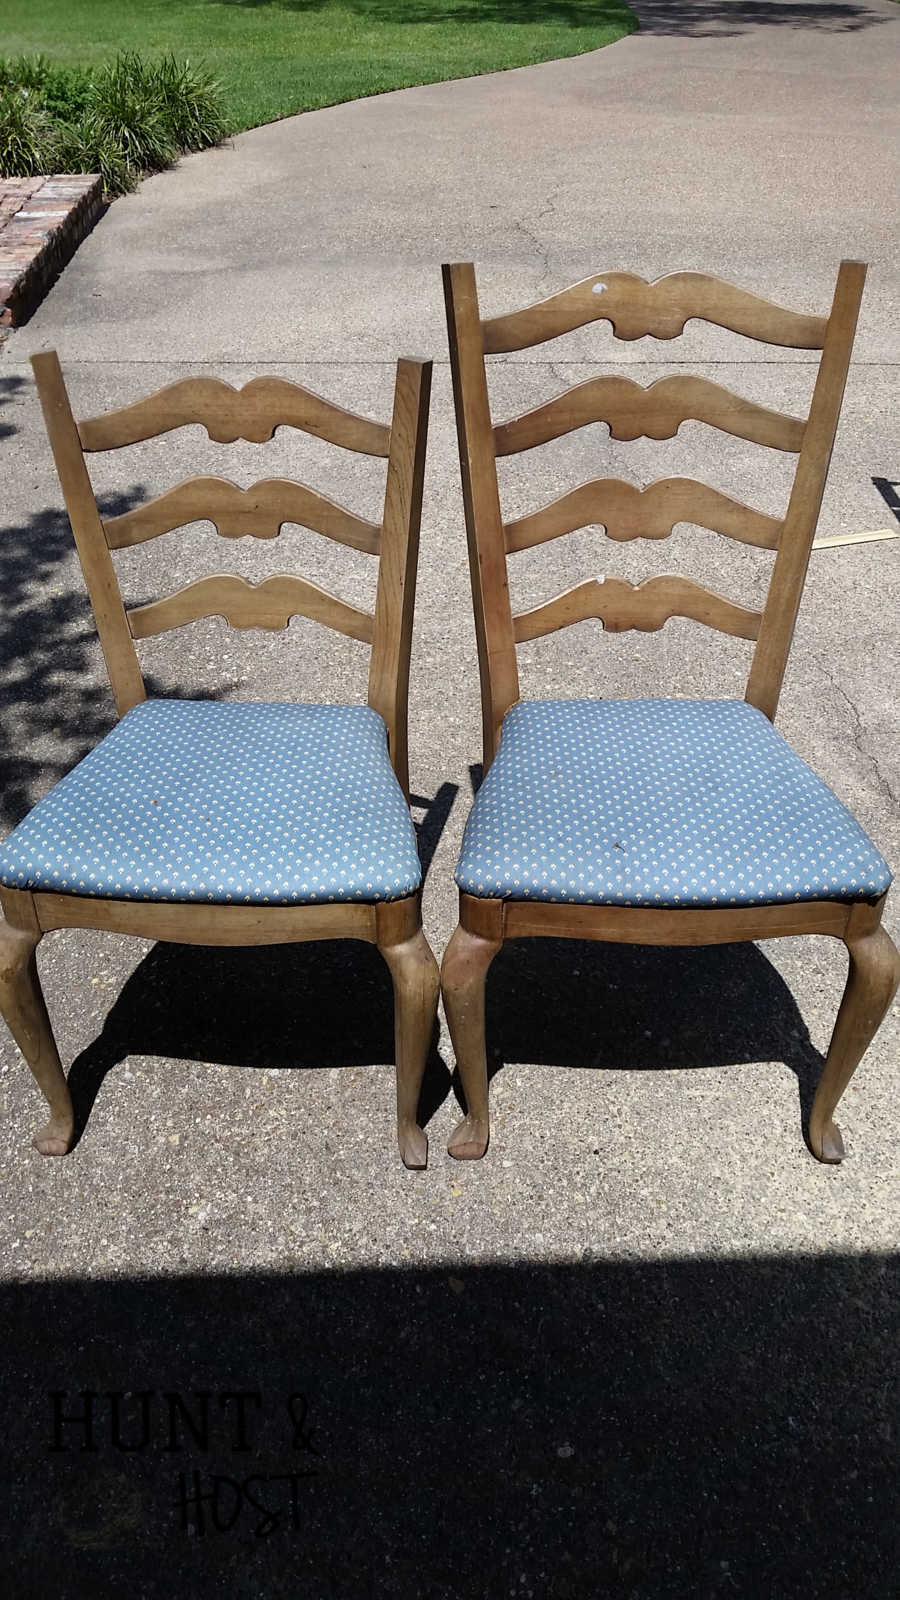 Chair Repair Broken Chair Repair Outdoor Treasures Hunt And Host